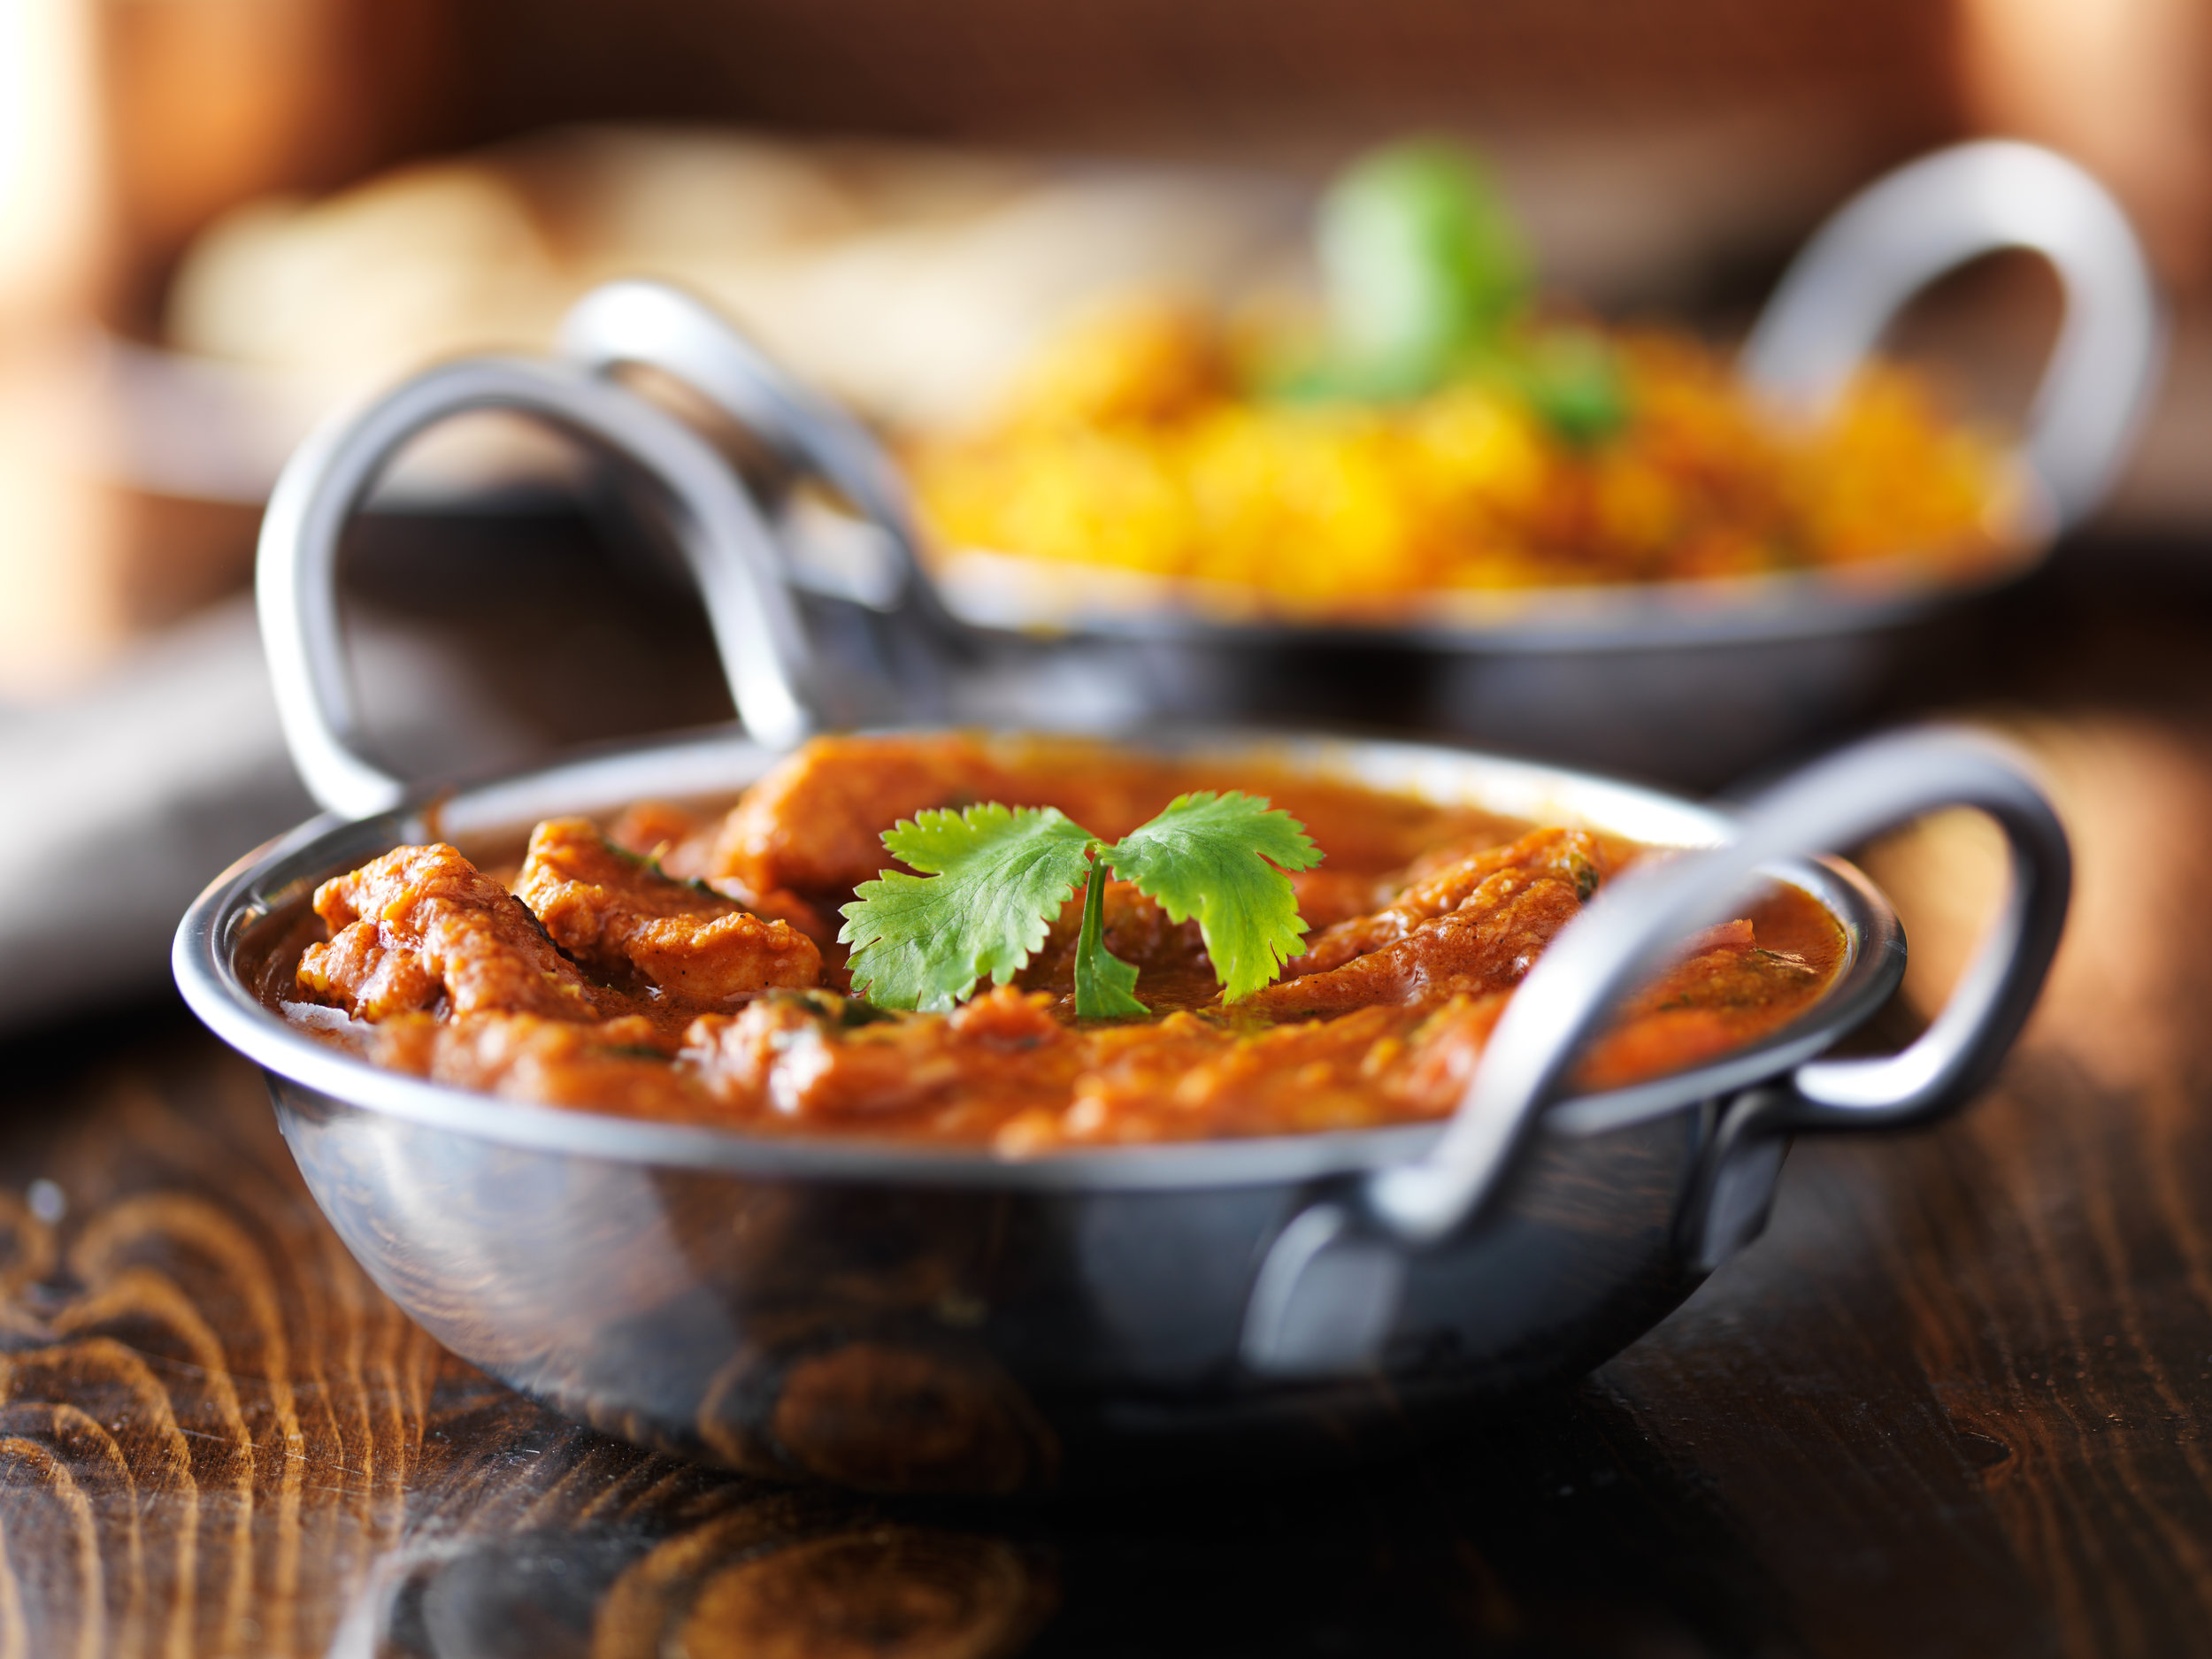 Online Personal Trainer Main Meal Recipes -Easy Mild Chicken Curry.jpg